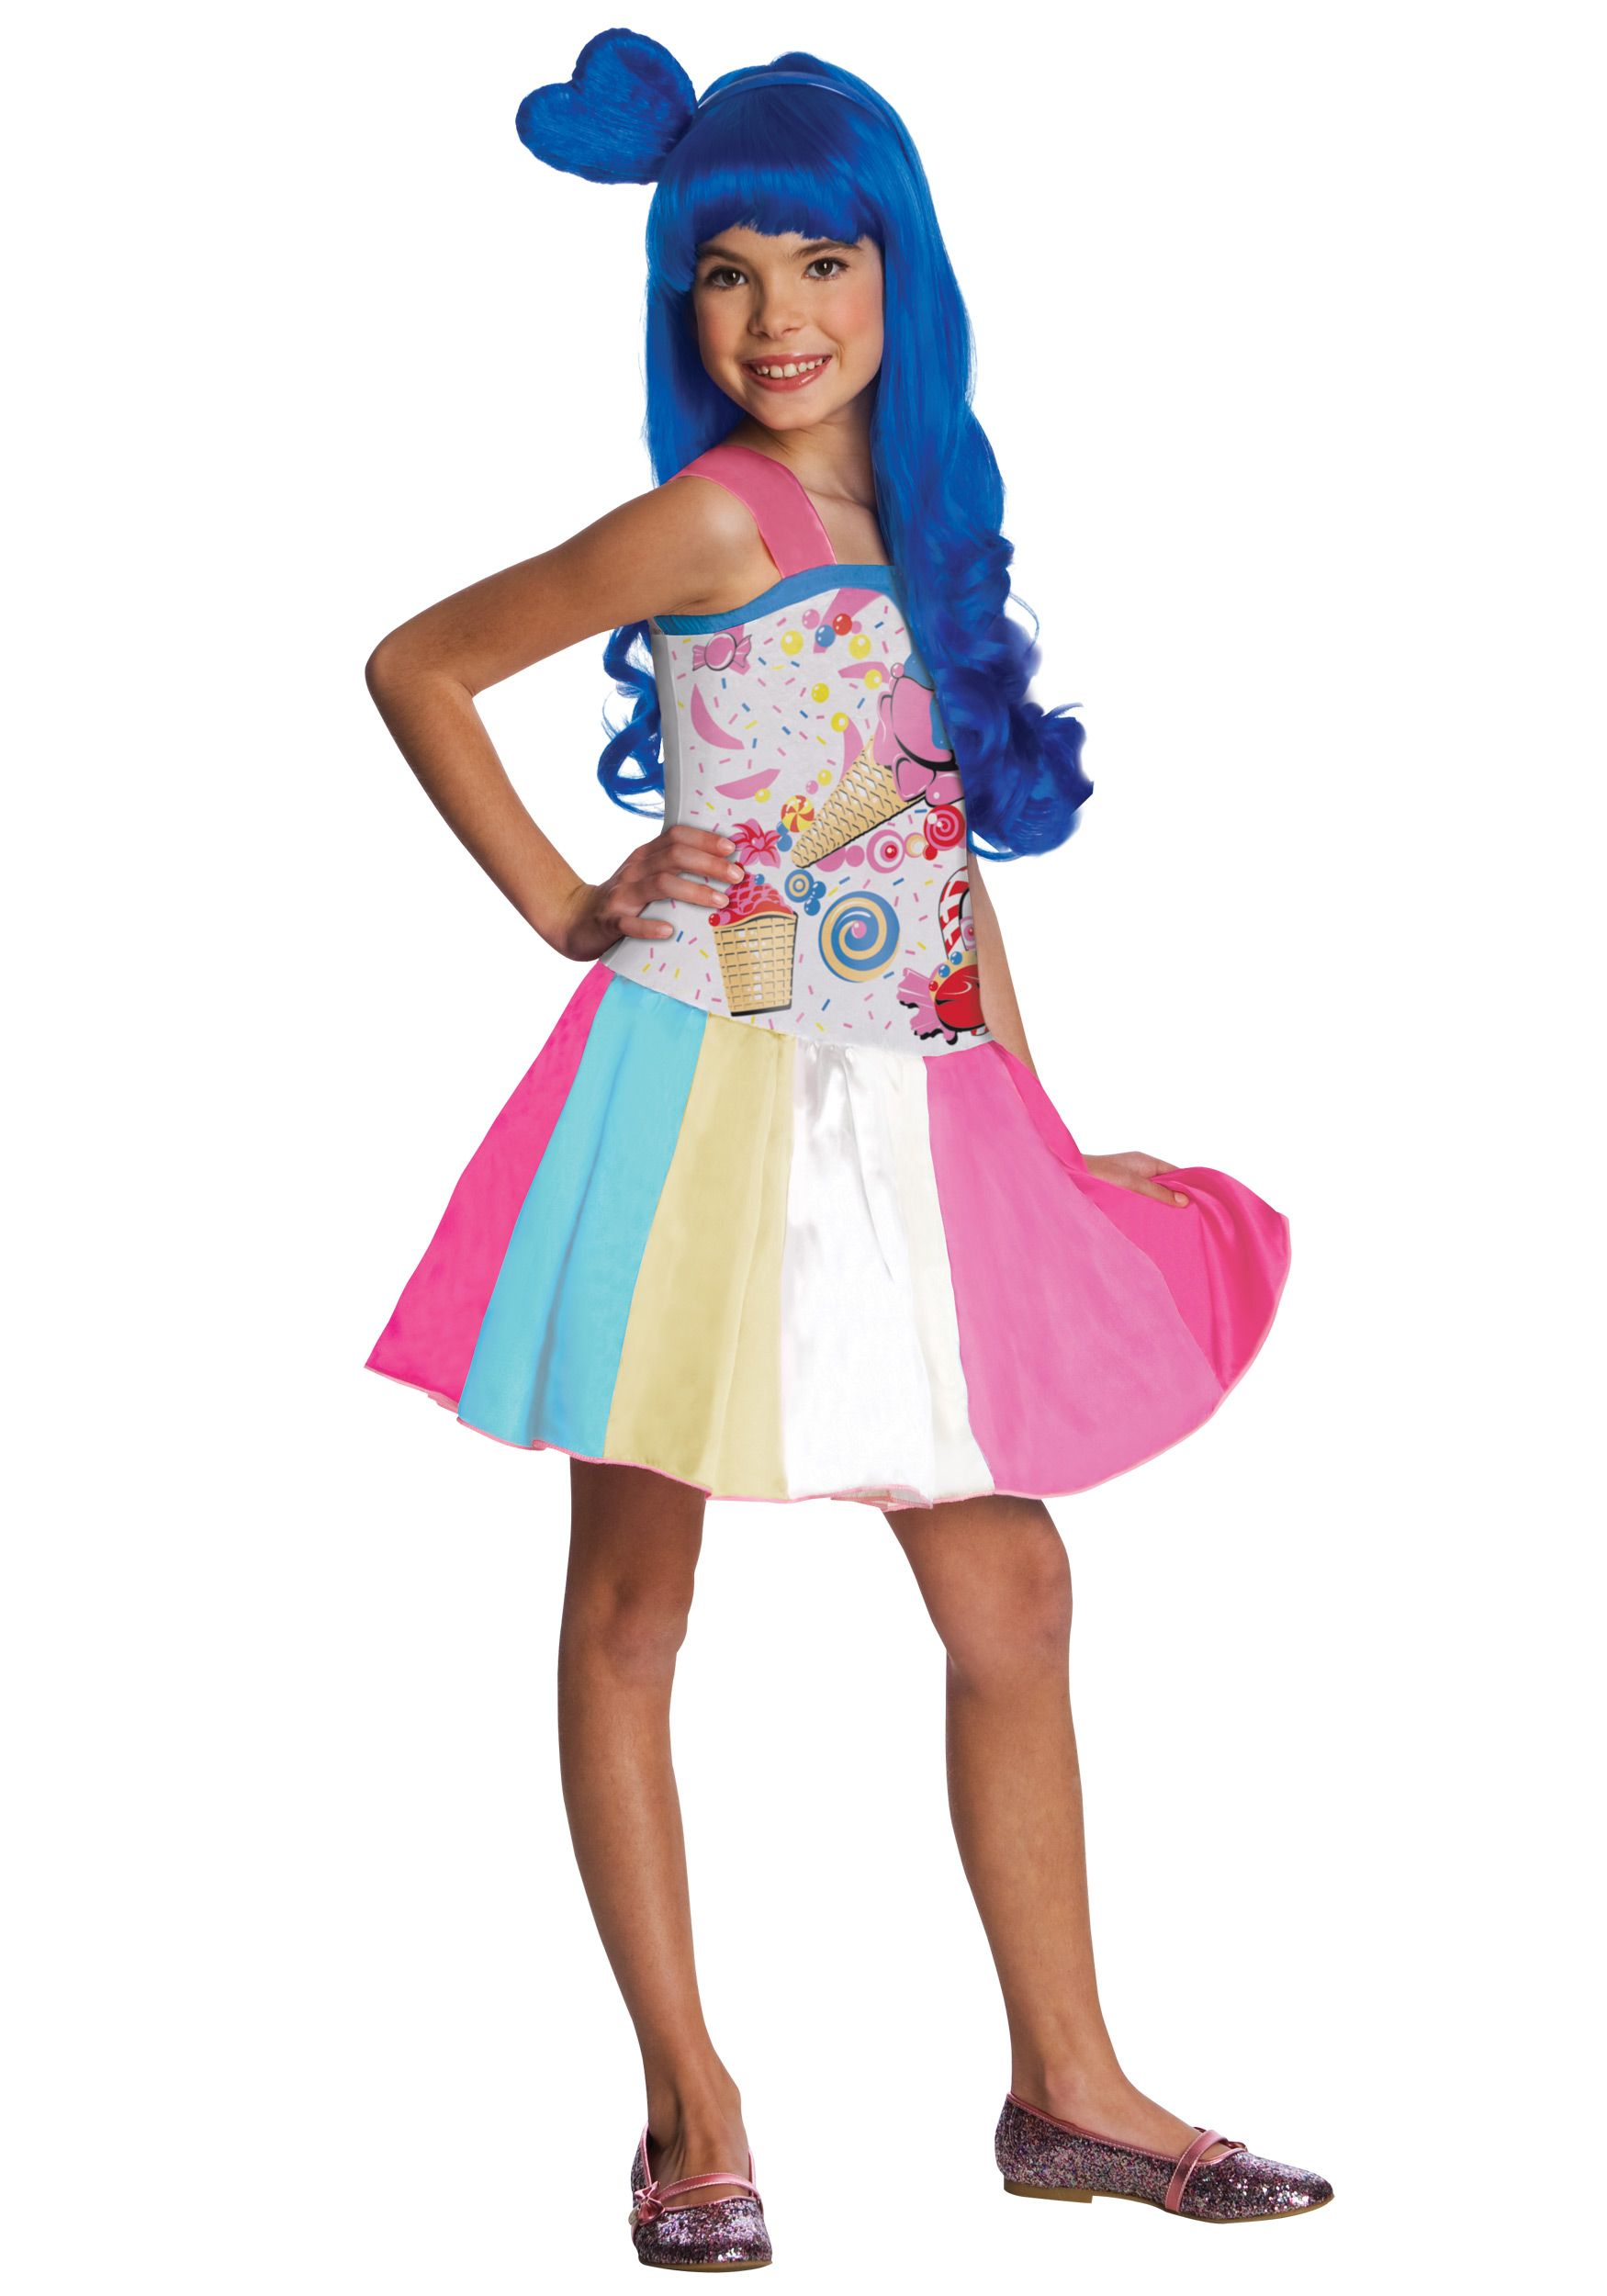 For Charlotte - kids katy perry costume ideas | Aria June ...